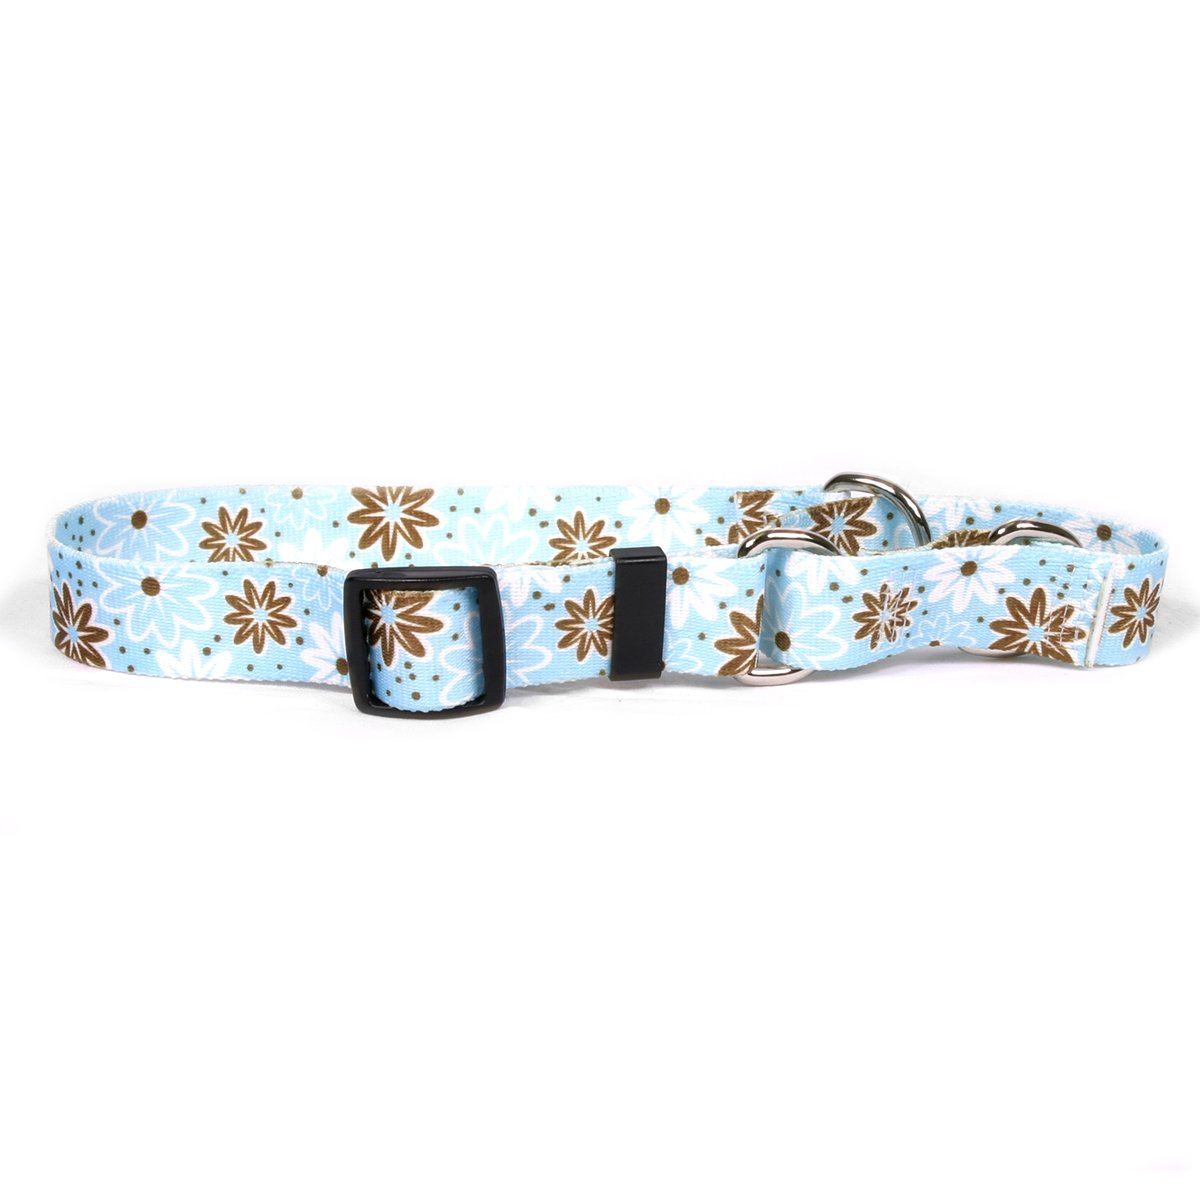 Yellow Dog Design Martingale Slip Collar, Daisy Chain Blue, Large 27'' by Yellow Dog Design